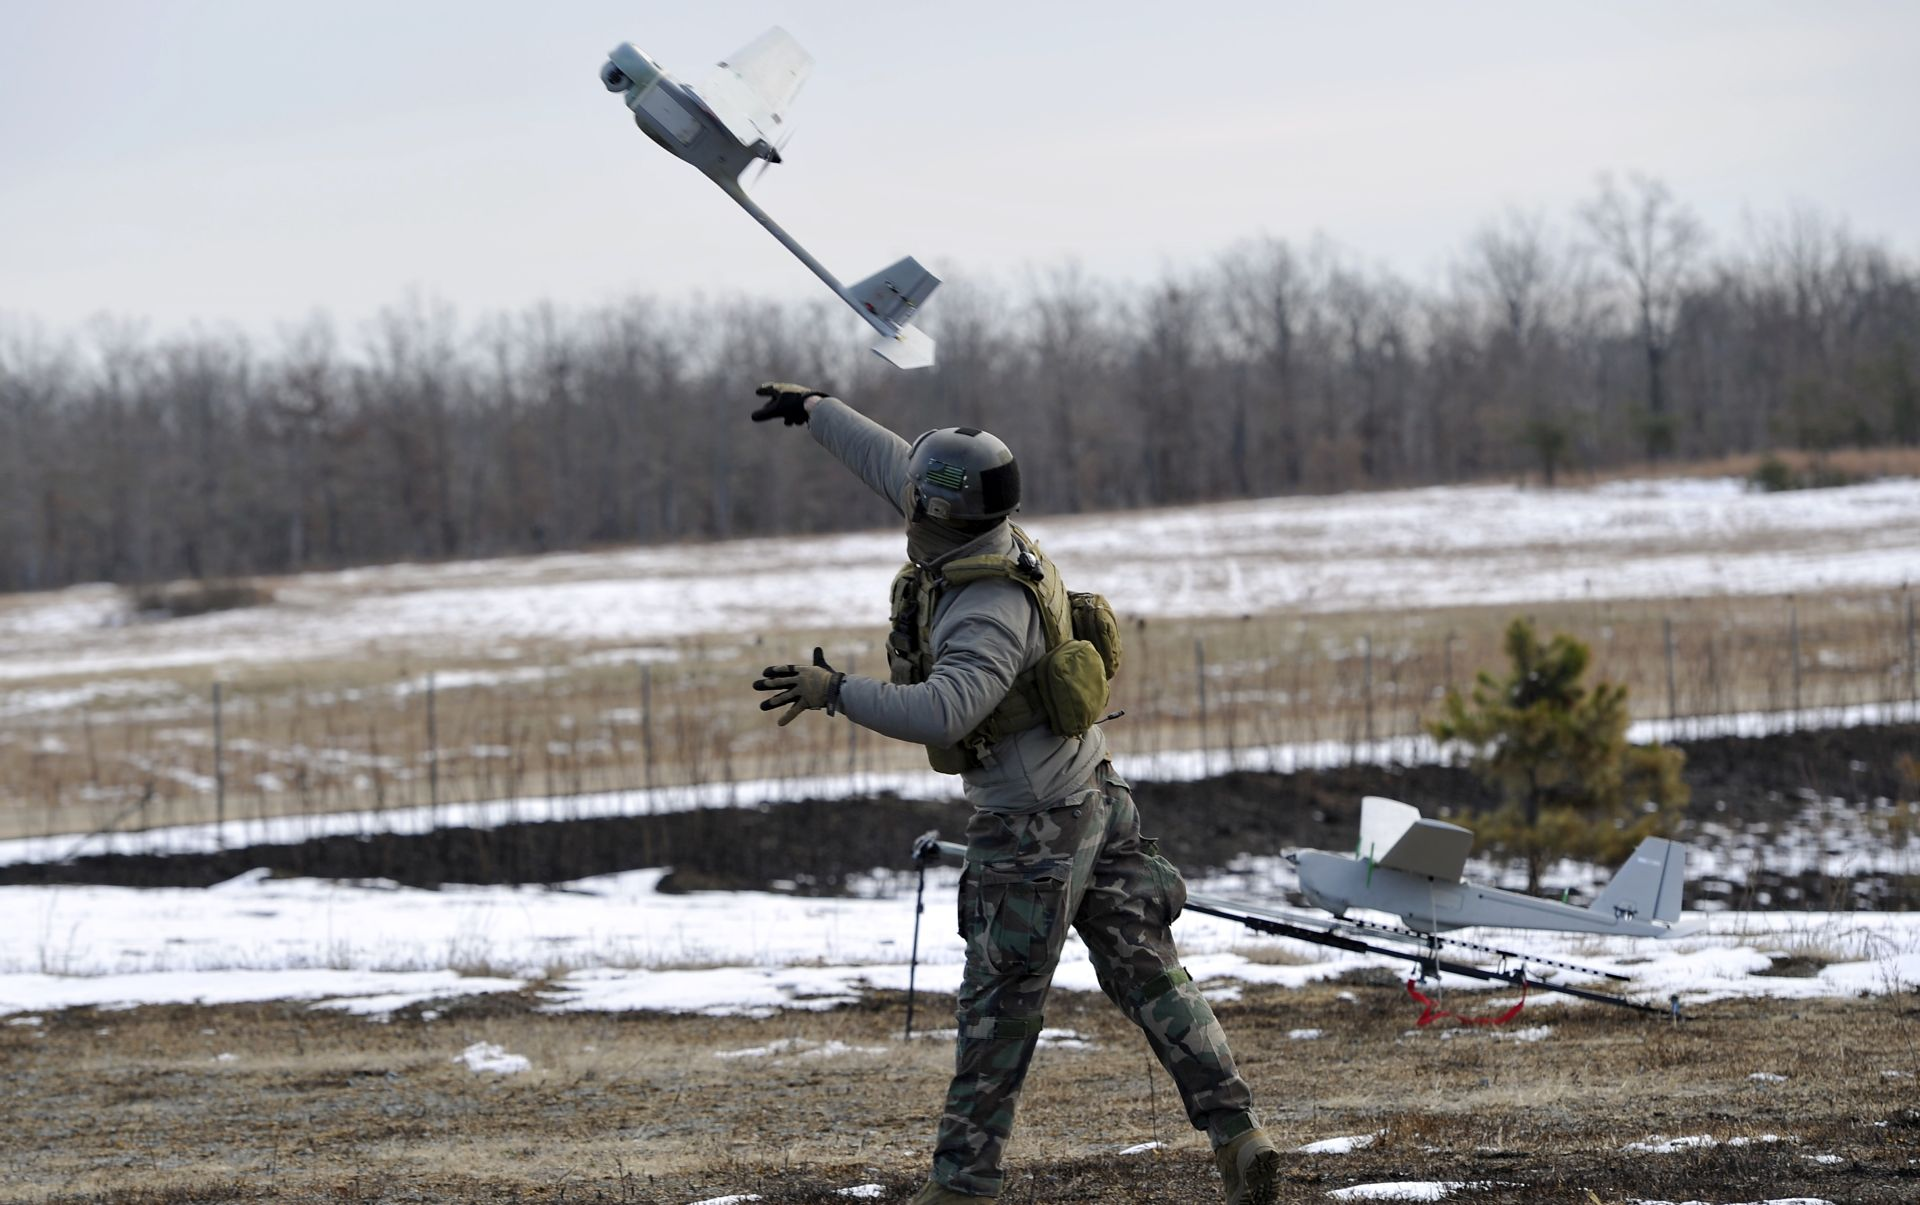 US Army Awards Contract for RQ-11B Raven UAVs for Spanish